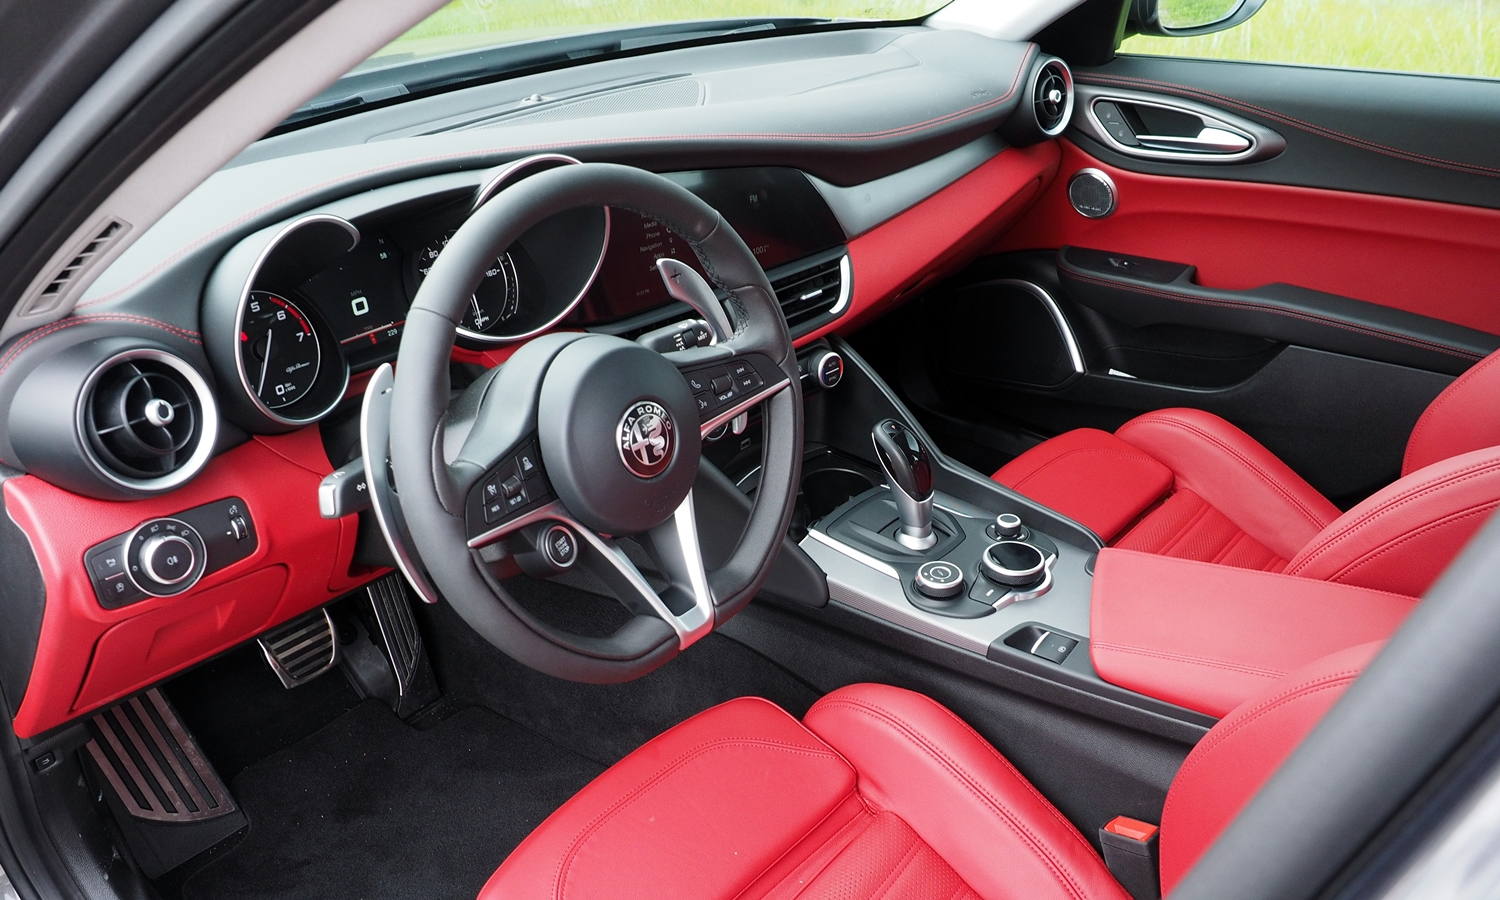 2017 alfa romeo giulia pros and cons at truedelta 2017 for Alfa romeo 159 interieur